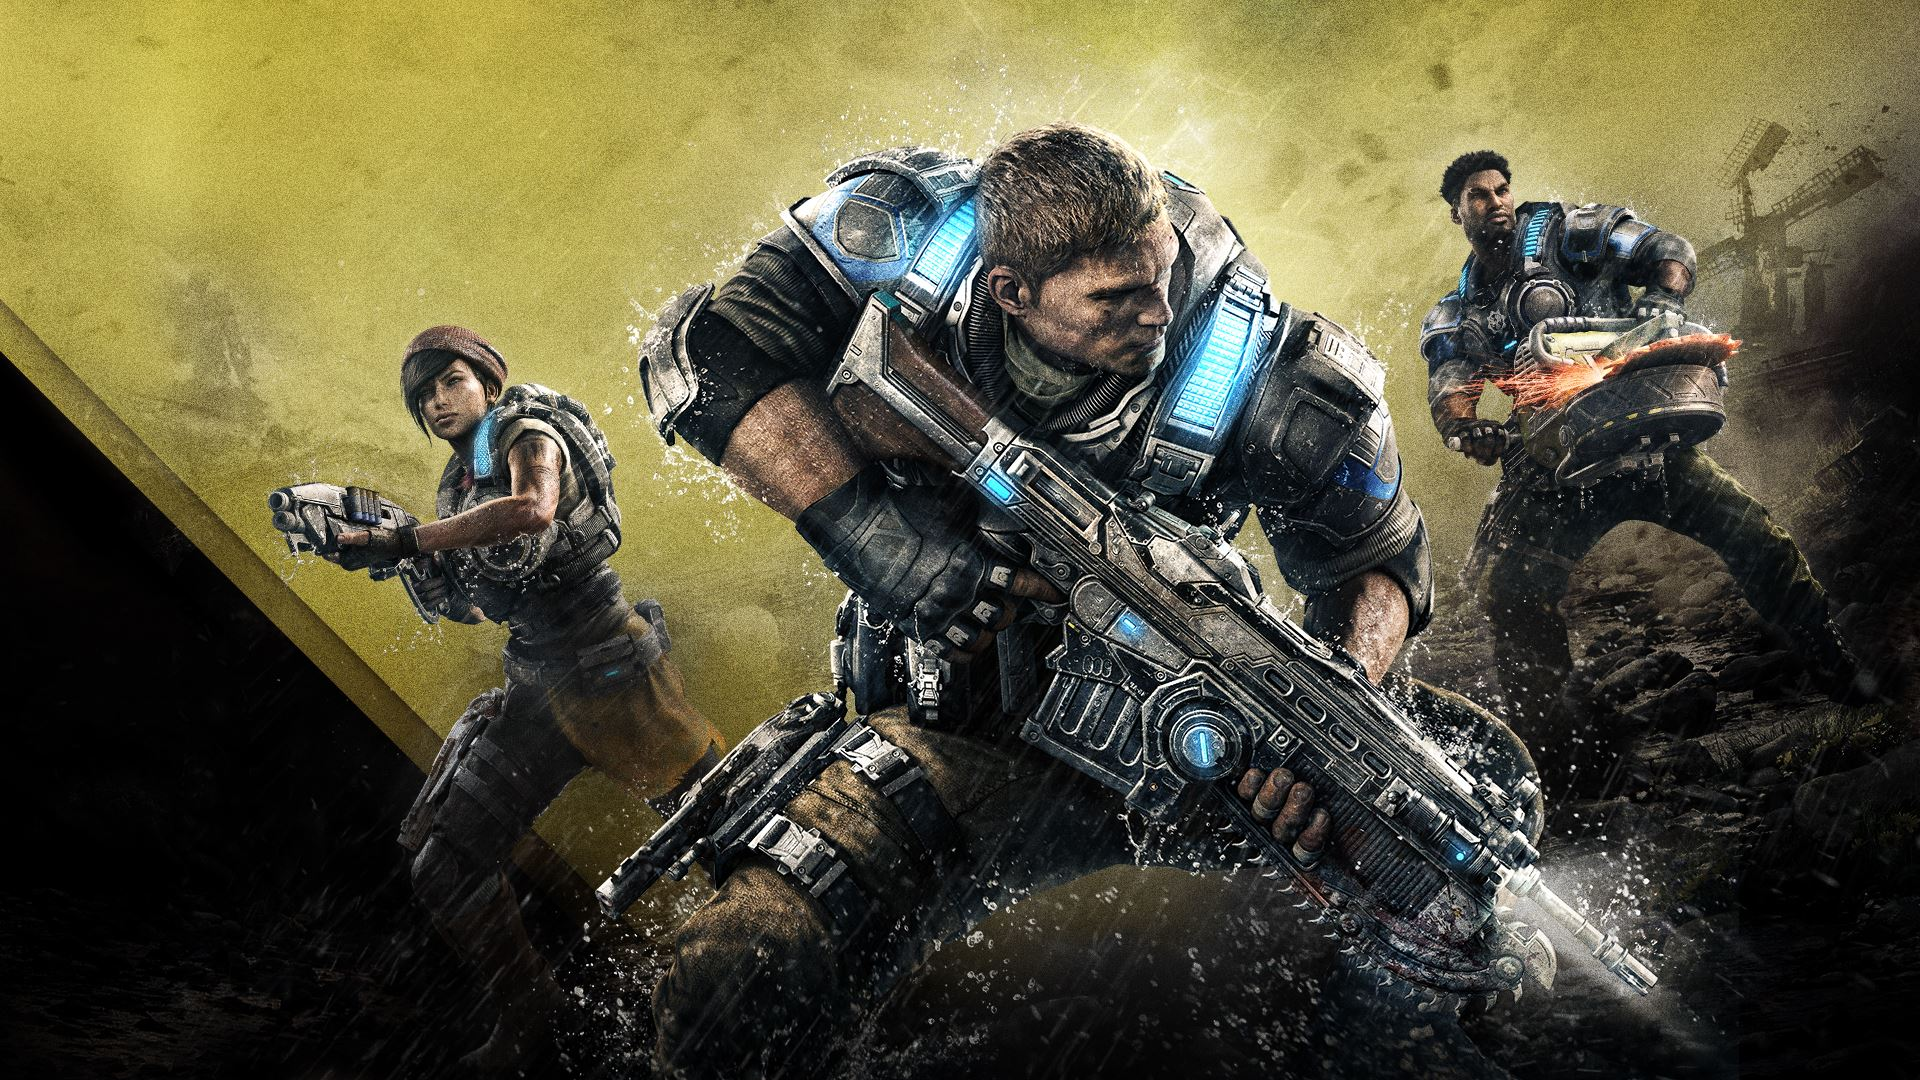 Gears of war 4 possibly largest xbox one game to date - Wallpaper gears of war 4 ...